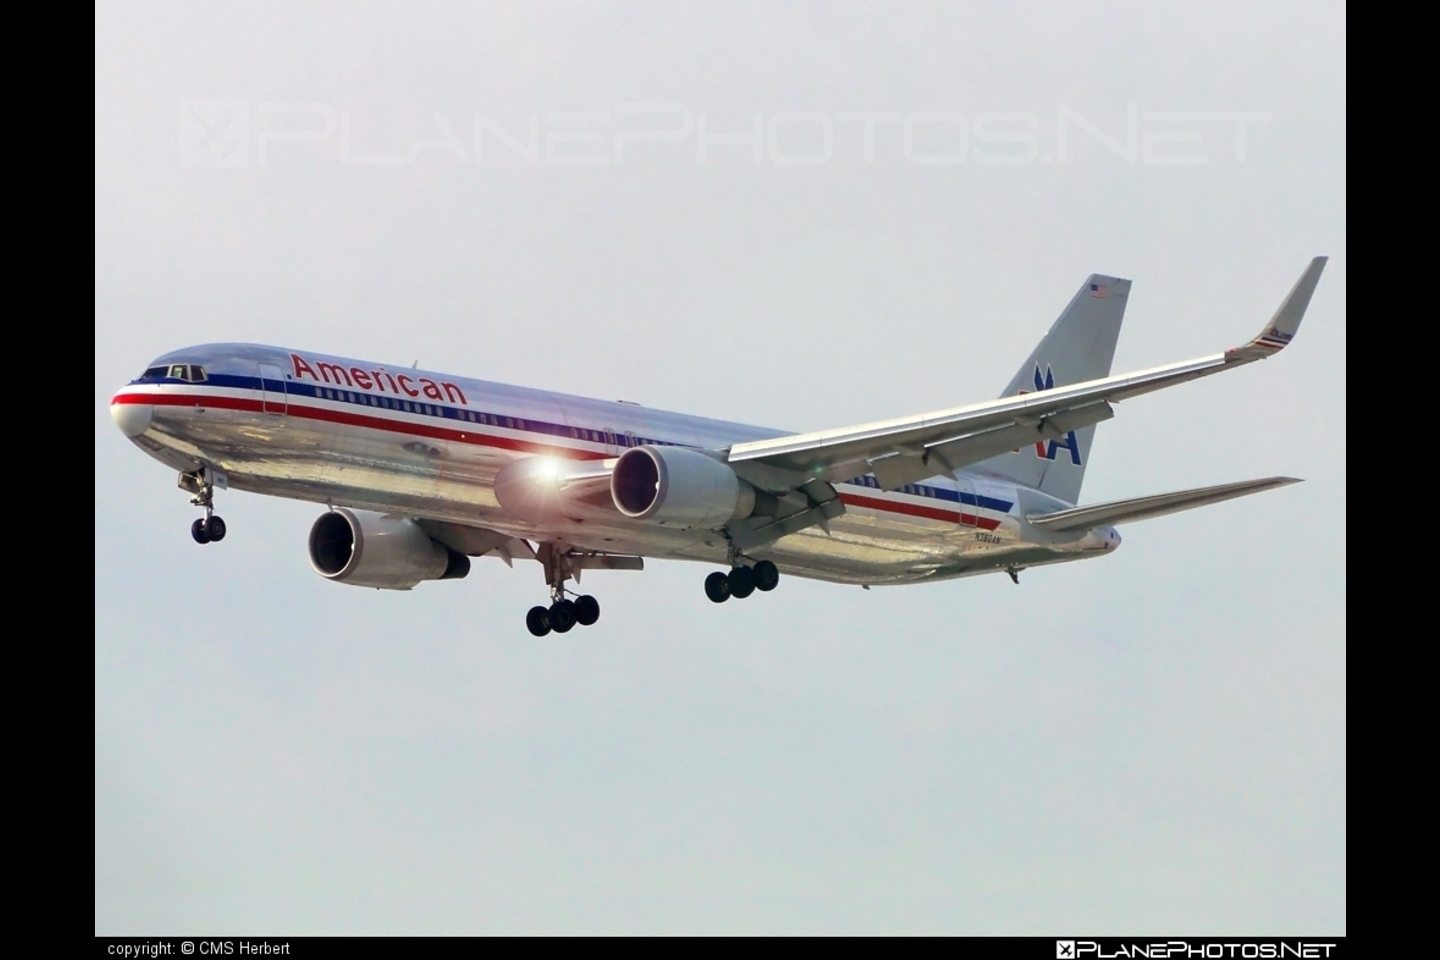 767 300 N382an Operated By American Airlines Taken Cms Picture #10611 1900